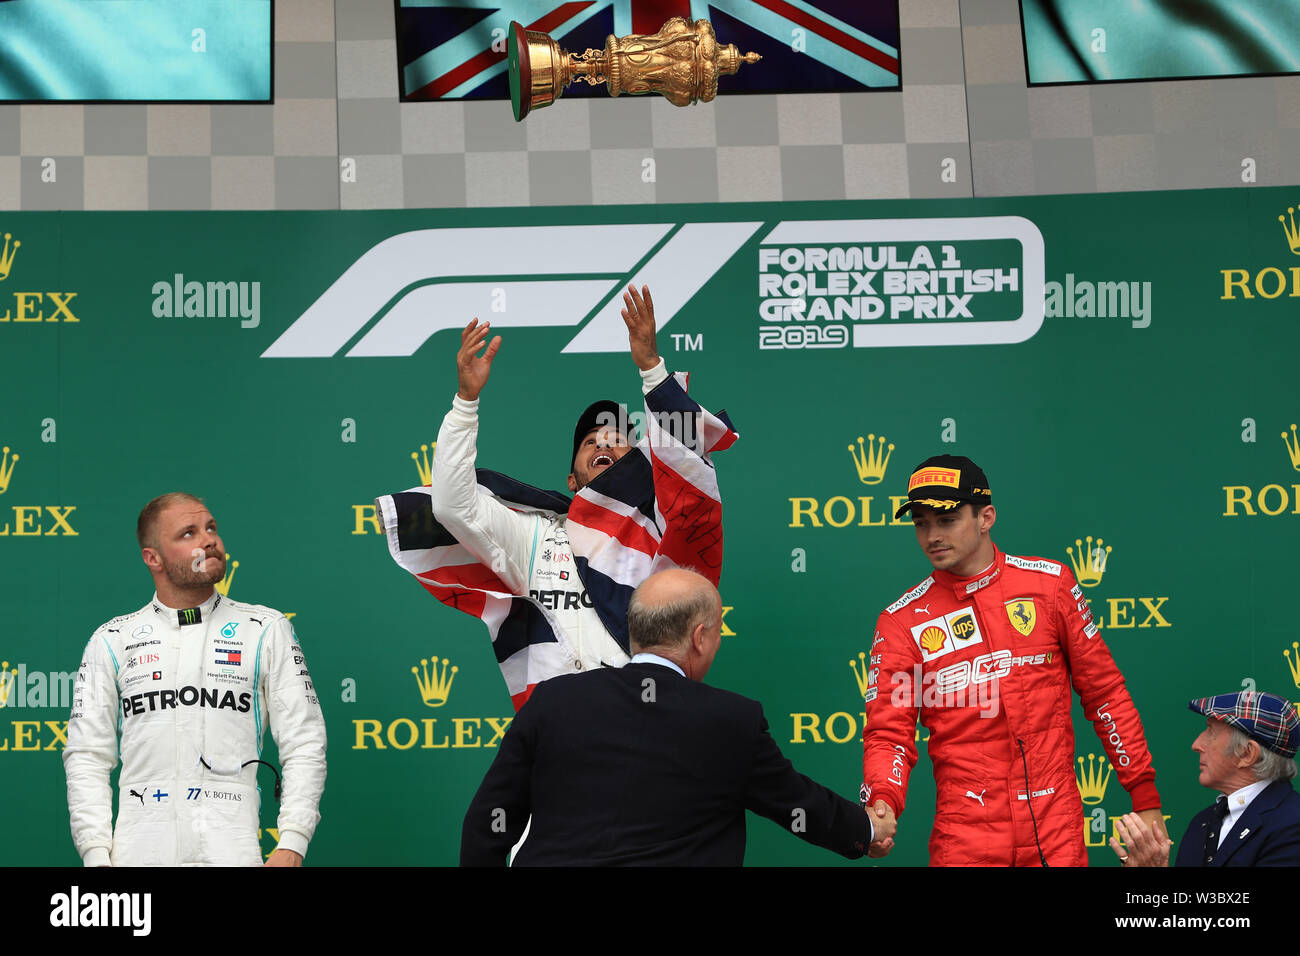 Silverstone, UK. 14th July 2019. FIA F1 Grand Prix of Britain, Race Day; Mercedes AMG Petronas Motorsport, Lewis Hamilton wins the British GP followed by team mate Valtteri Bottas and Scuderia Ferrari, Charles Leclerc Credit: Action Plus Sports Images/Alamy Live News Stock Photo